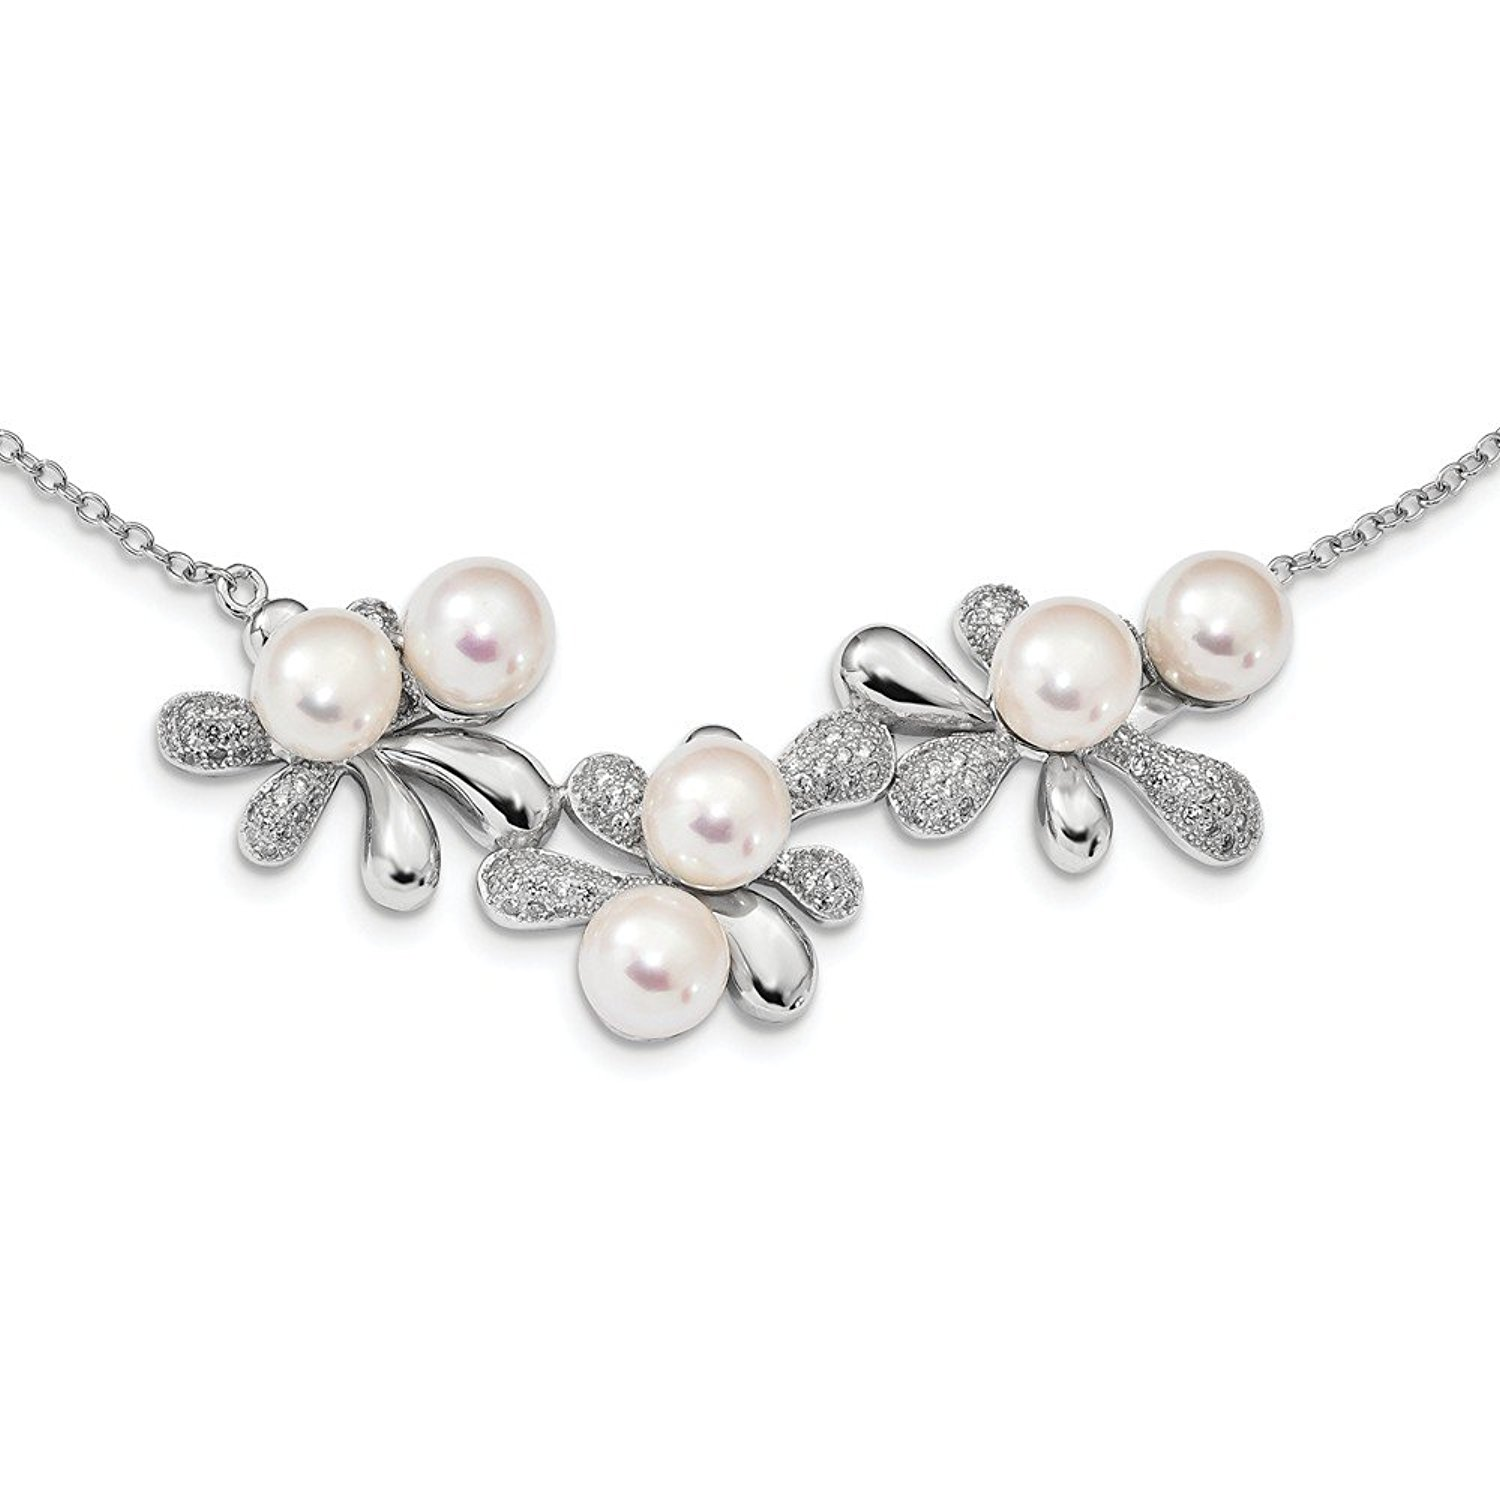 Jewelry Necklaces Pearls Sterling Silver Rhodium Bead and 7-8mm White FWC Pearl Dangle Neck